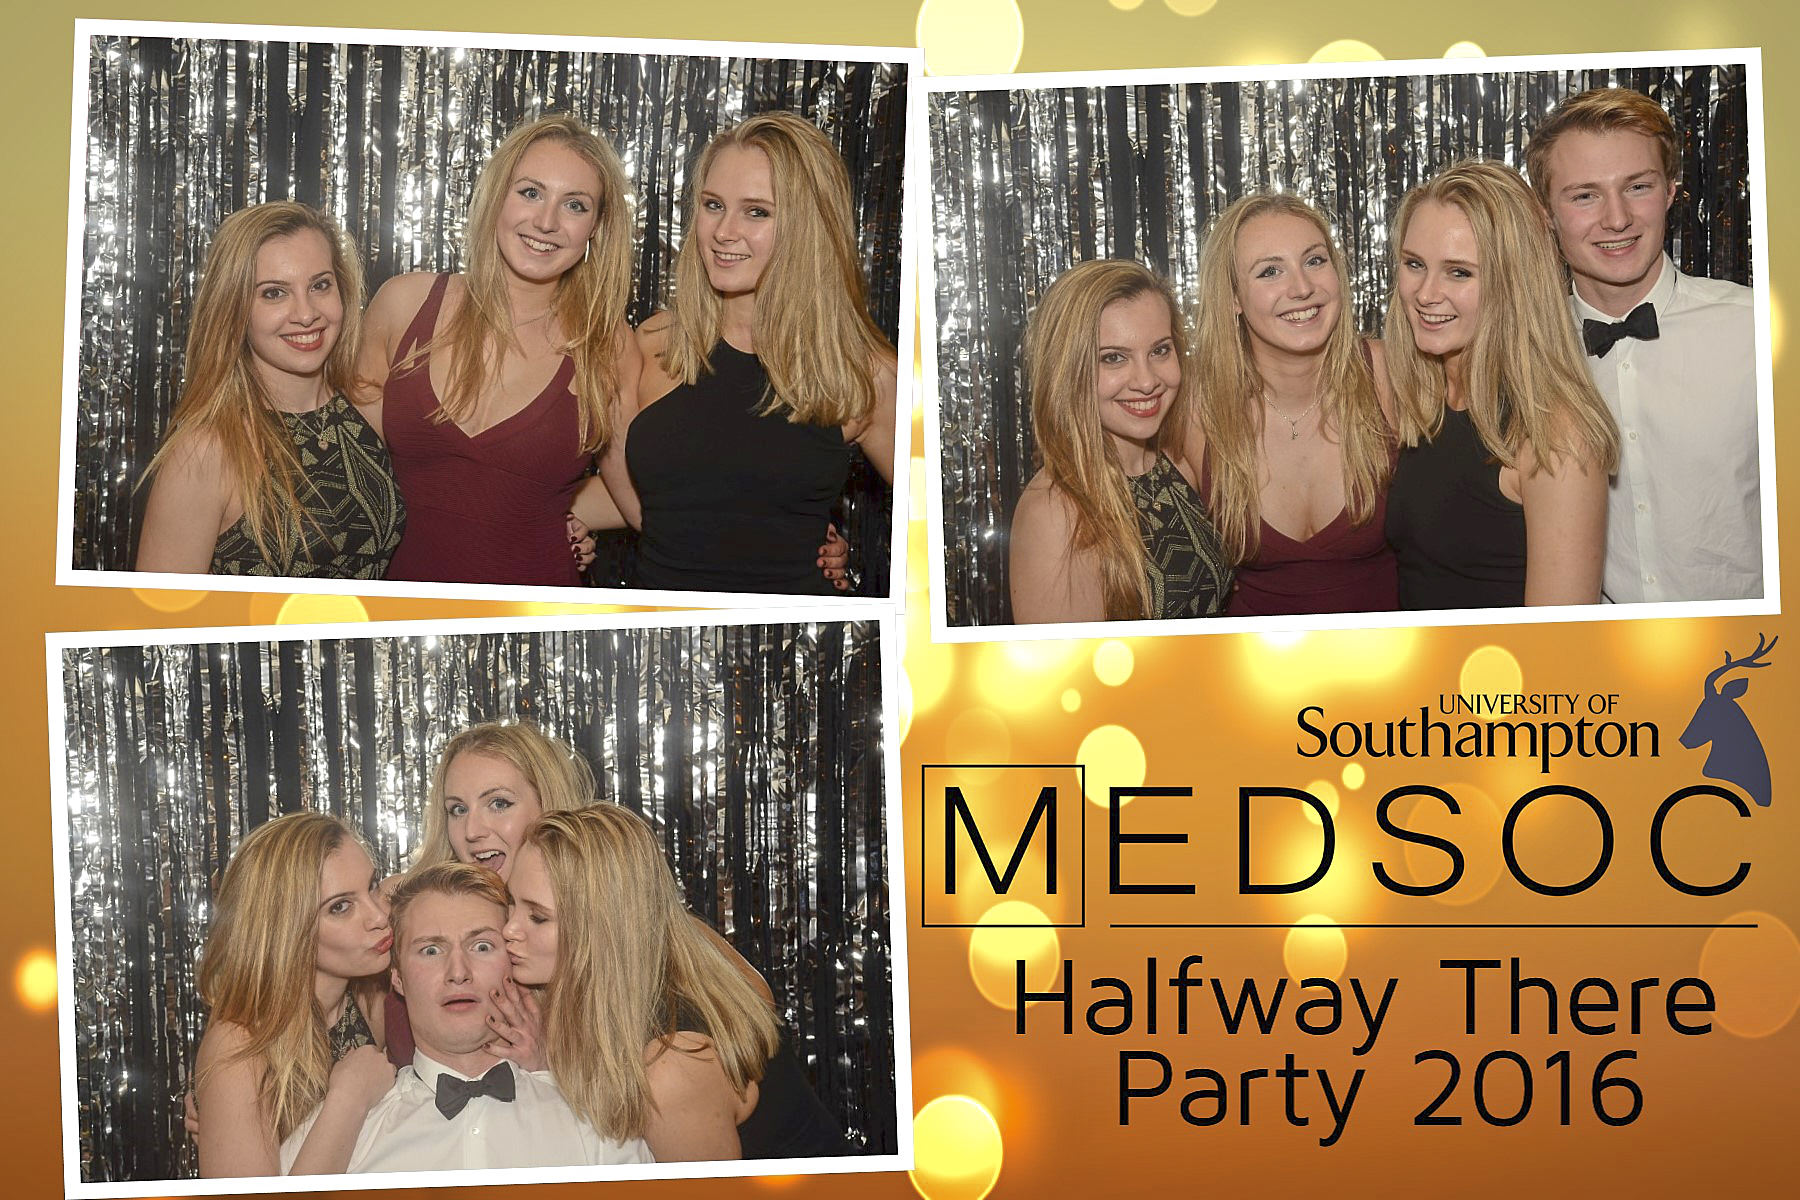 MedSoc Halfway There Party 2016 DS220429.jpg